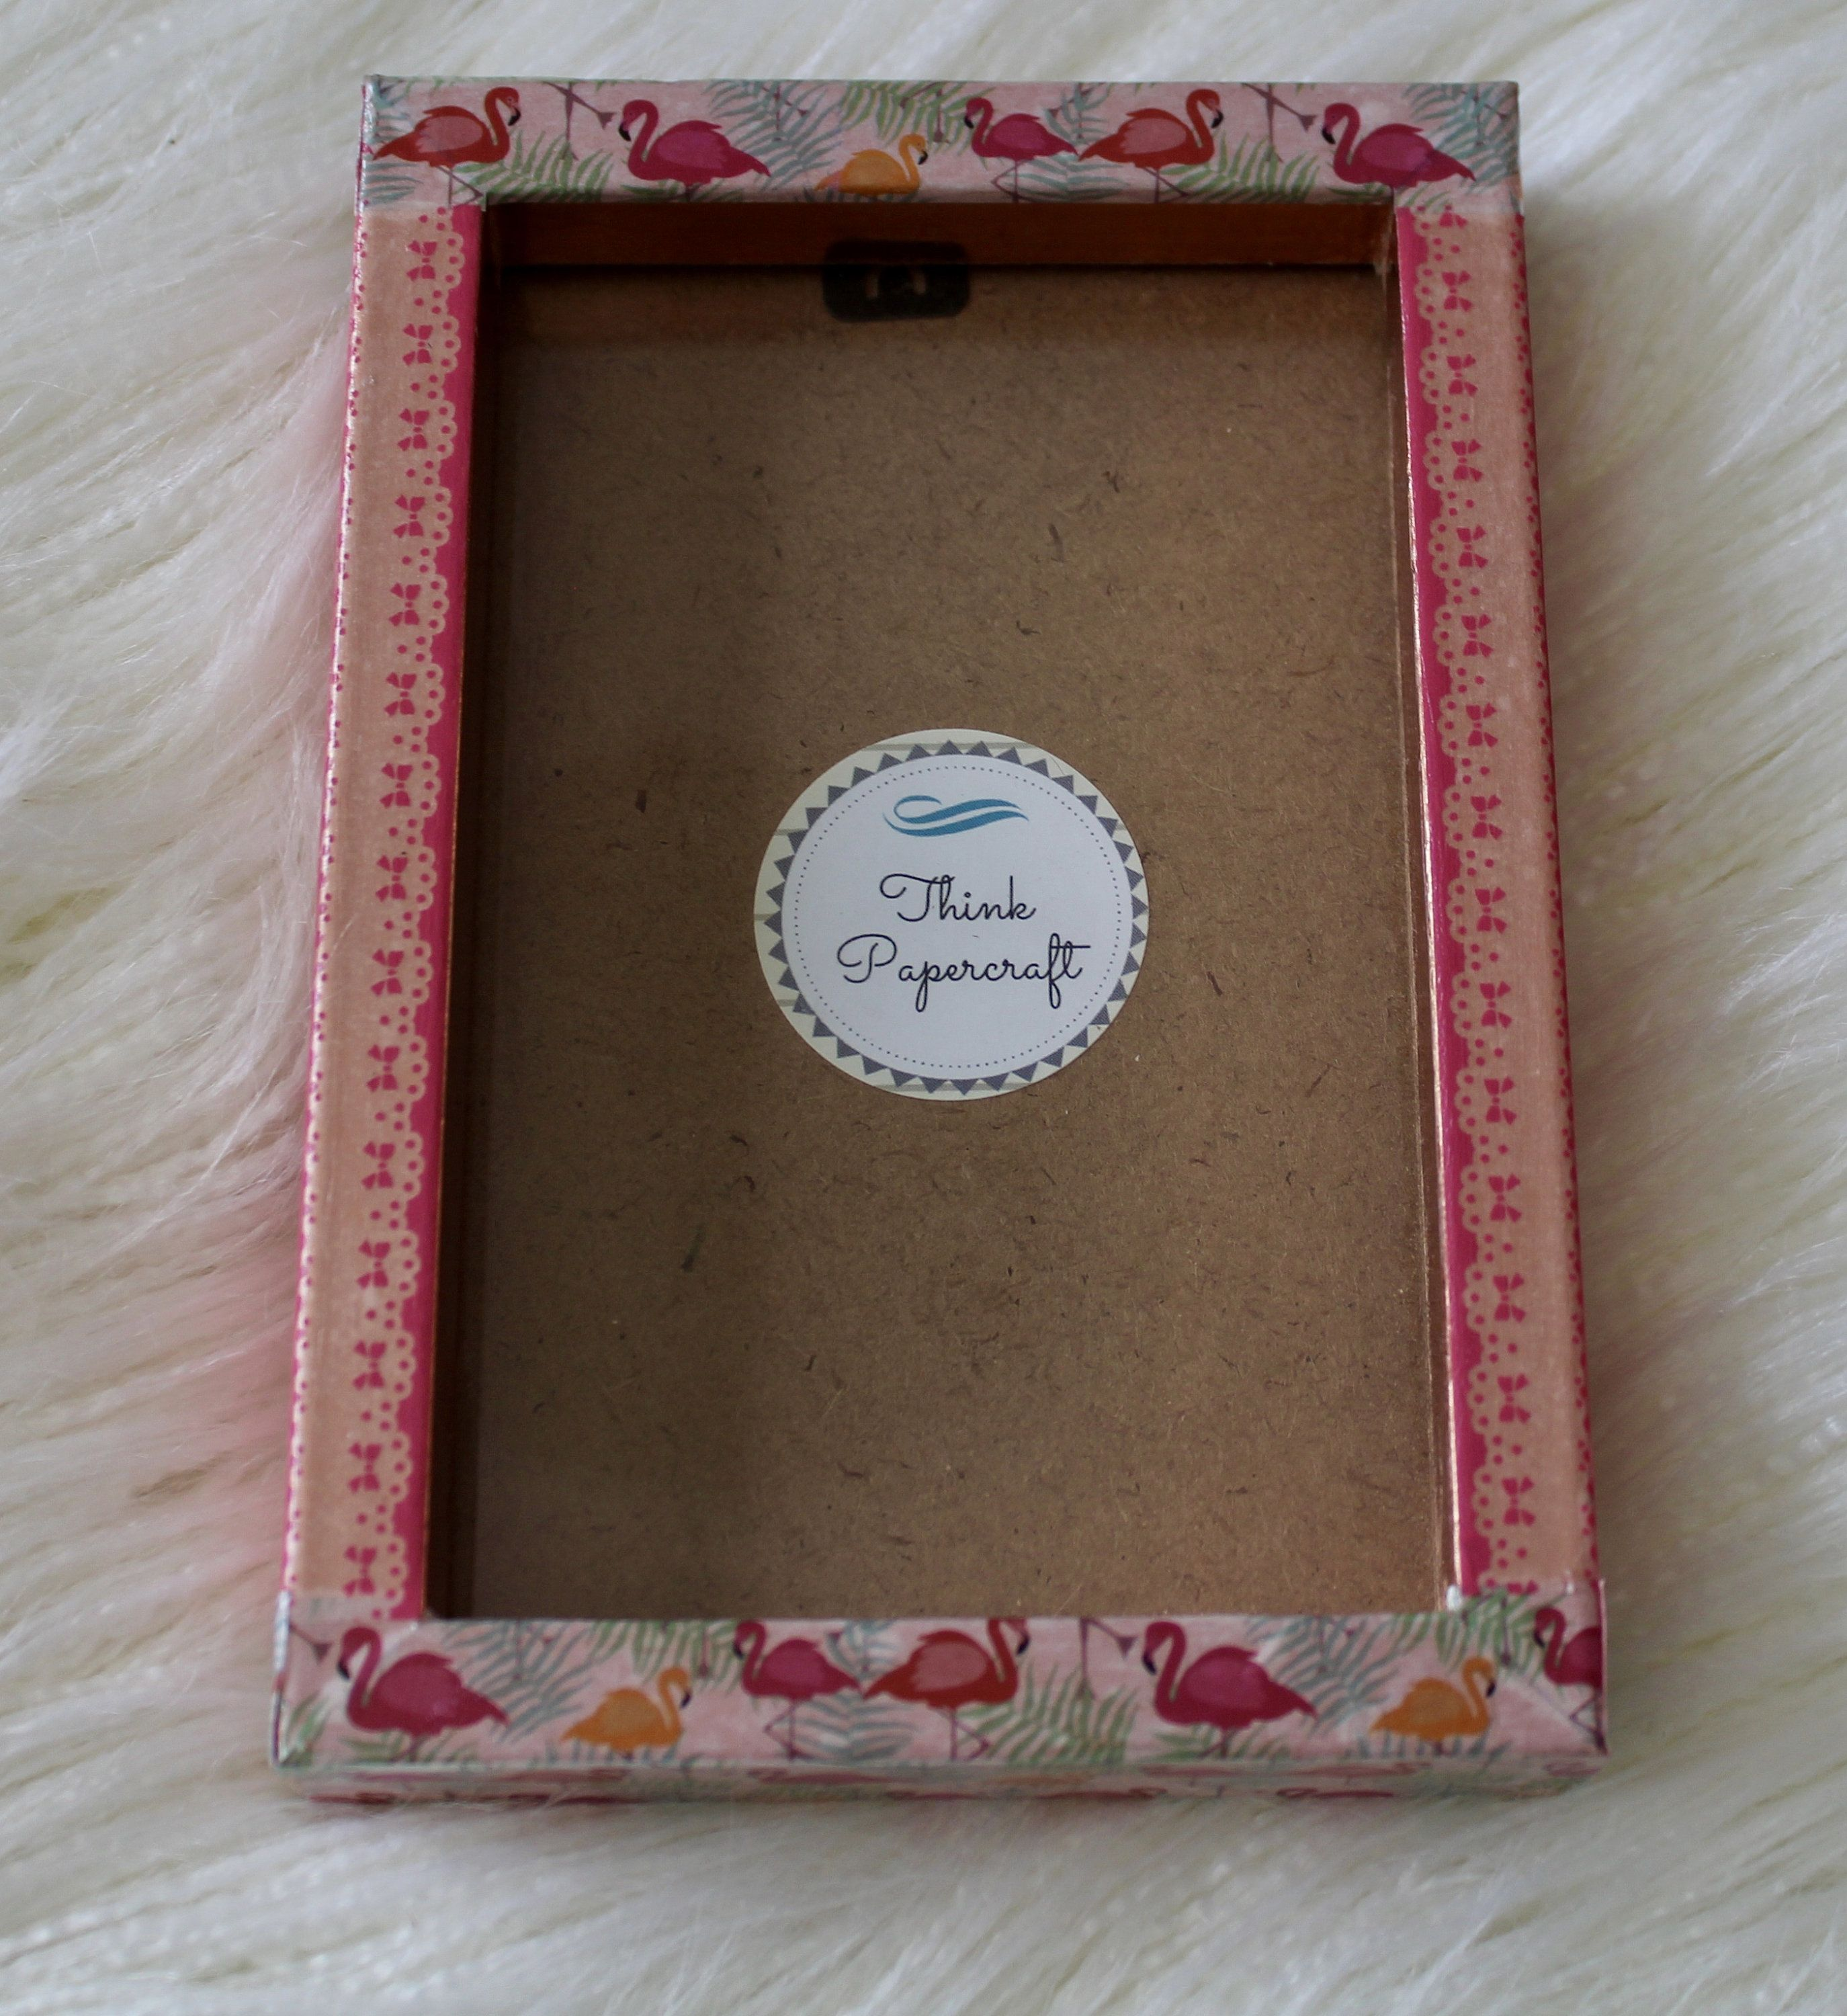 Pink Flamingo Decorated Photo Picture Frame 4x6 Inches 10x15 Cms Mount Or Frame 6x8 Inches 15x20 Cms With A Lace Pattern Unique Gift Photo Decor Pink Flamingos Frame